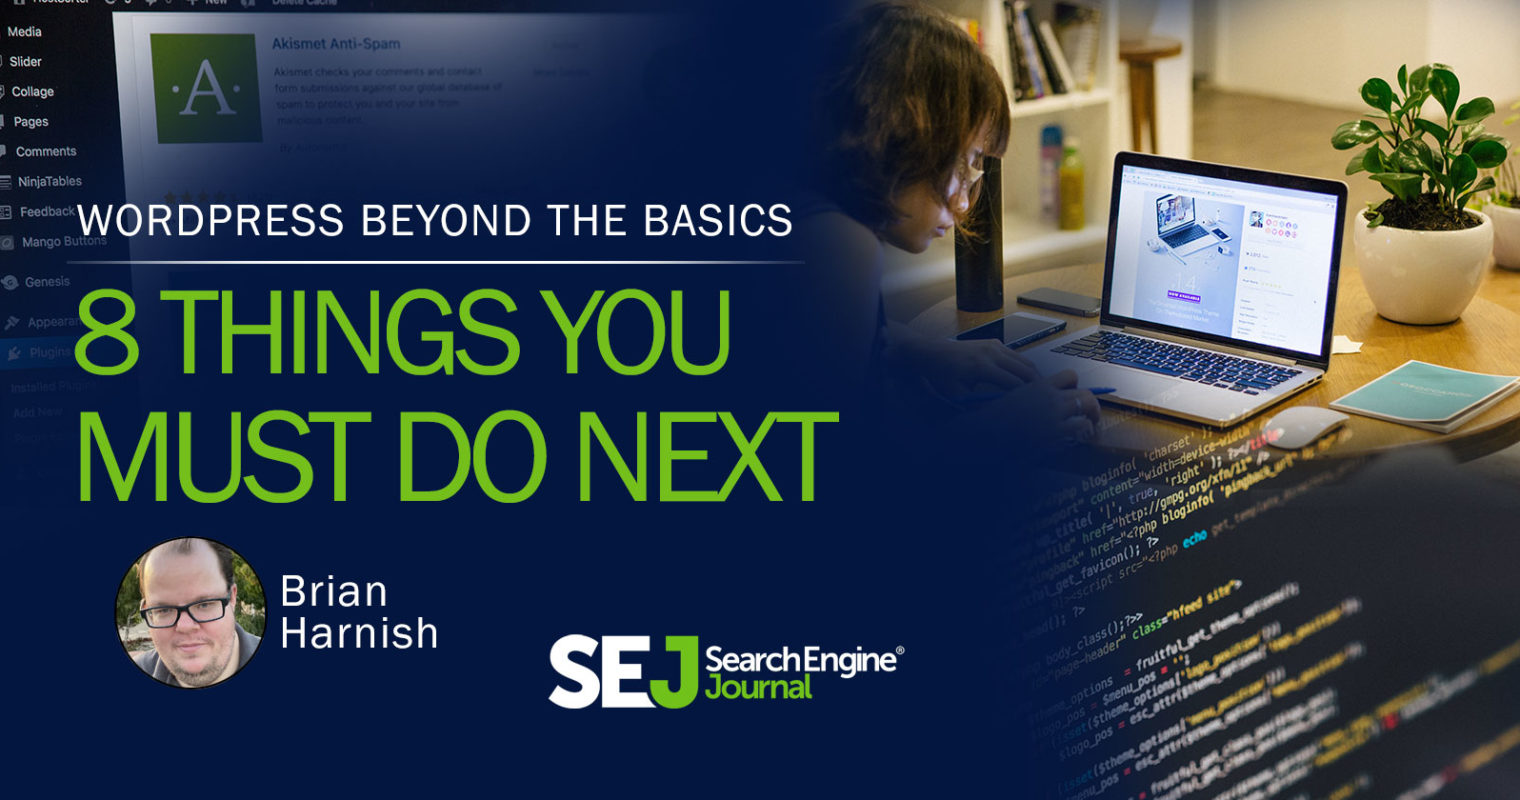 WordPress SEO Beyond the Basics: 8 Things You Must Do Next